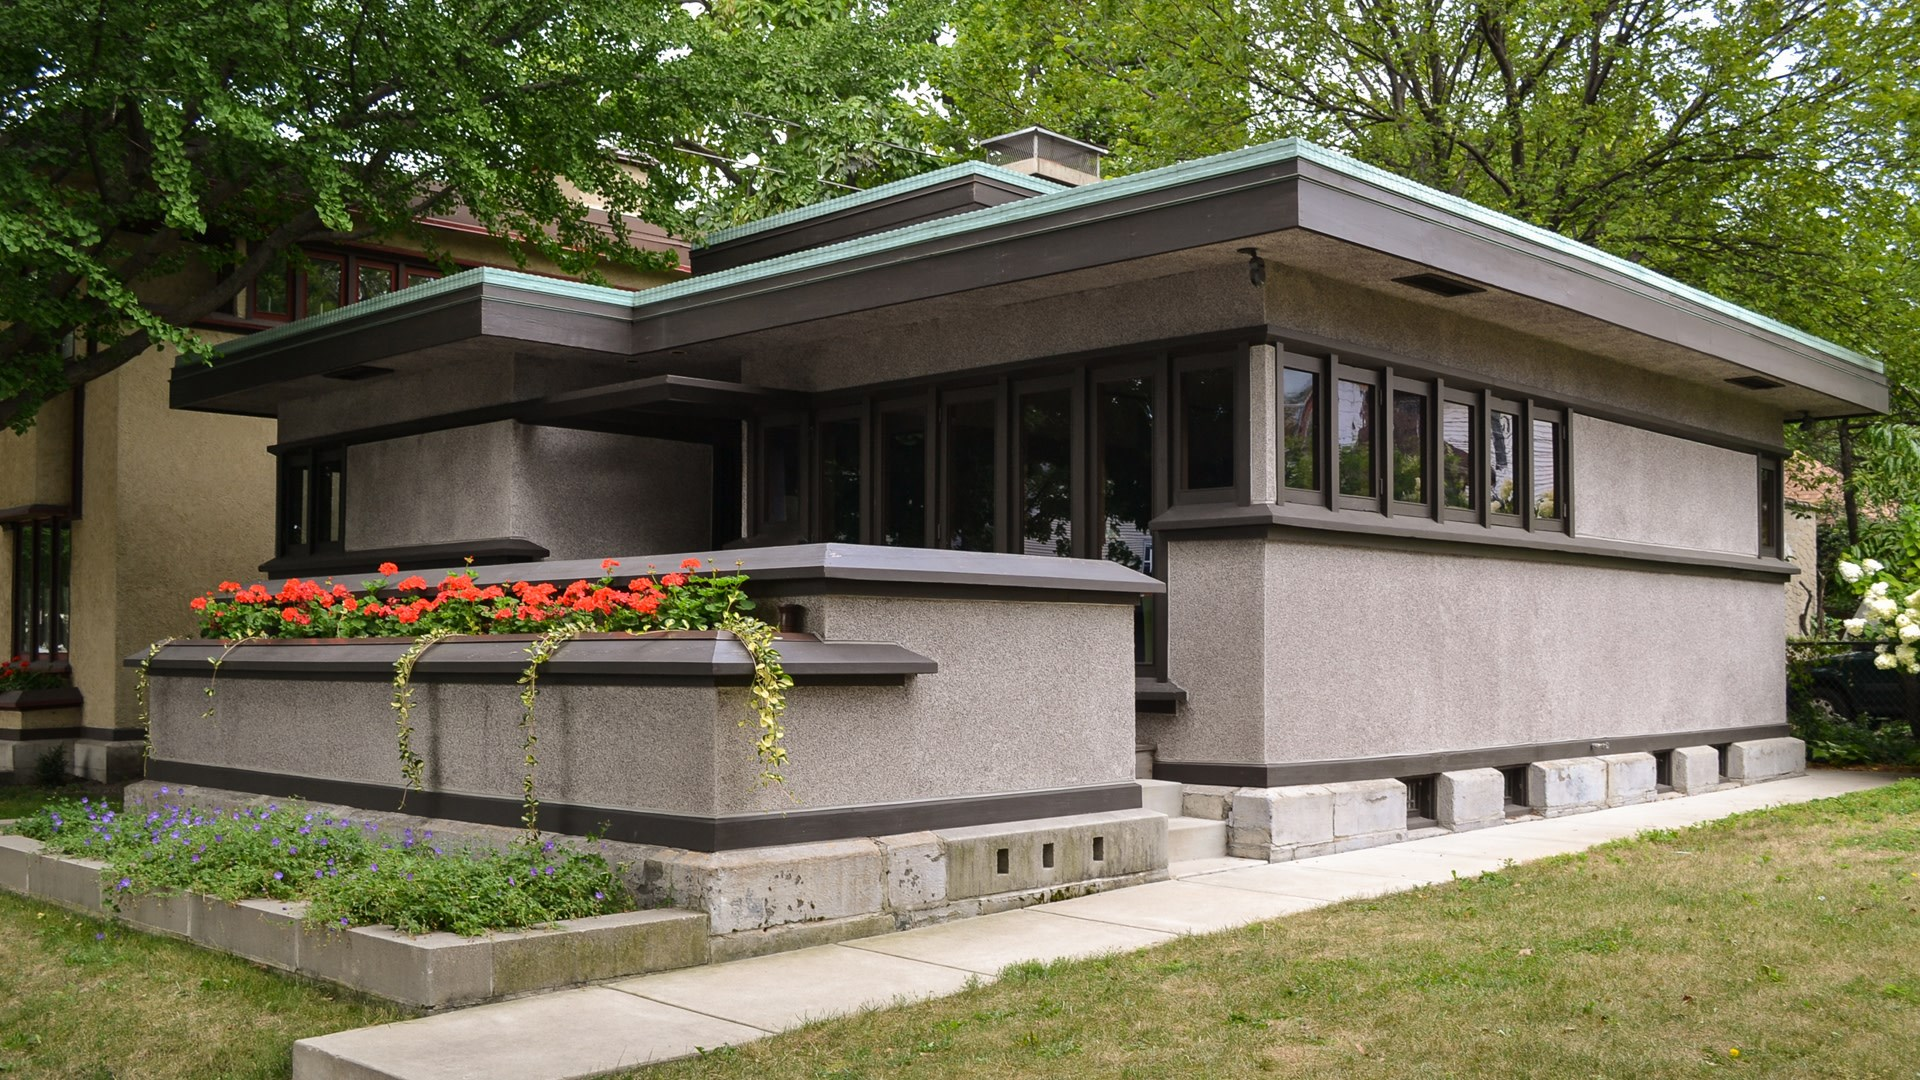 Lloyd Frank Wright Houses visit milwaukee - frank lloyd wright's burnham block, inc.